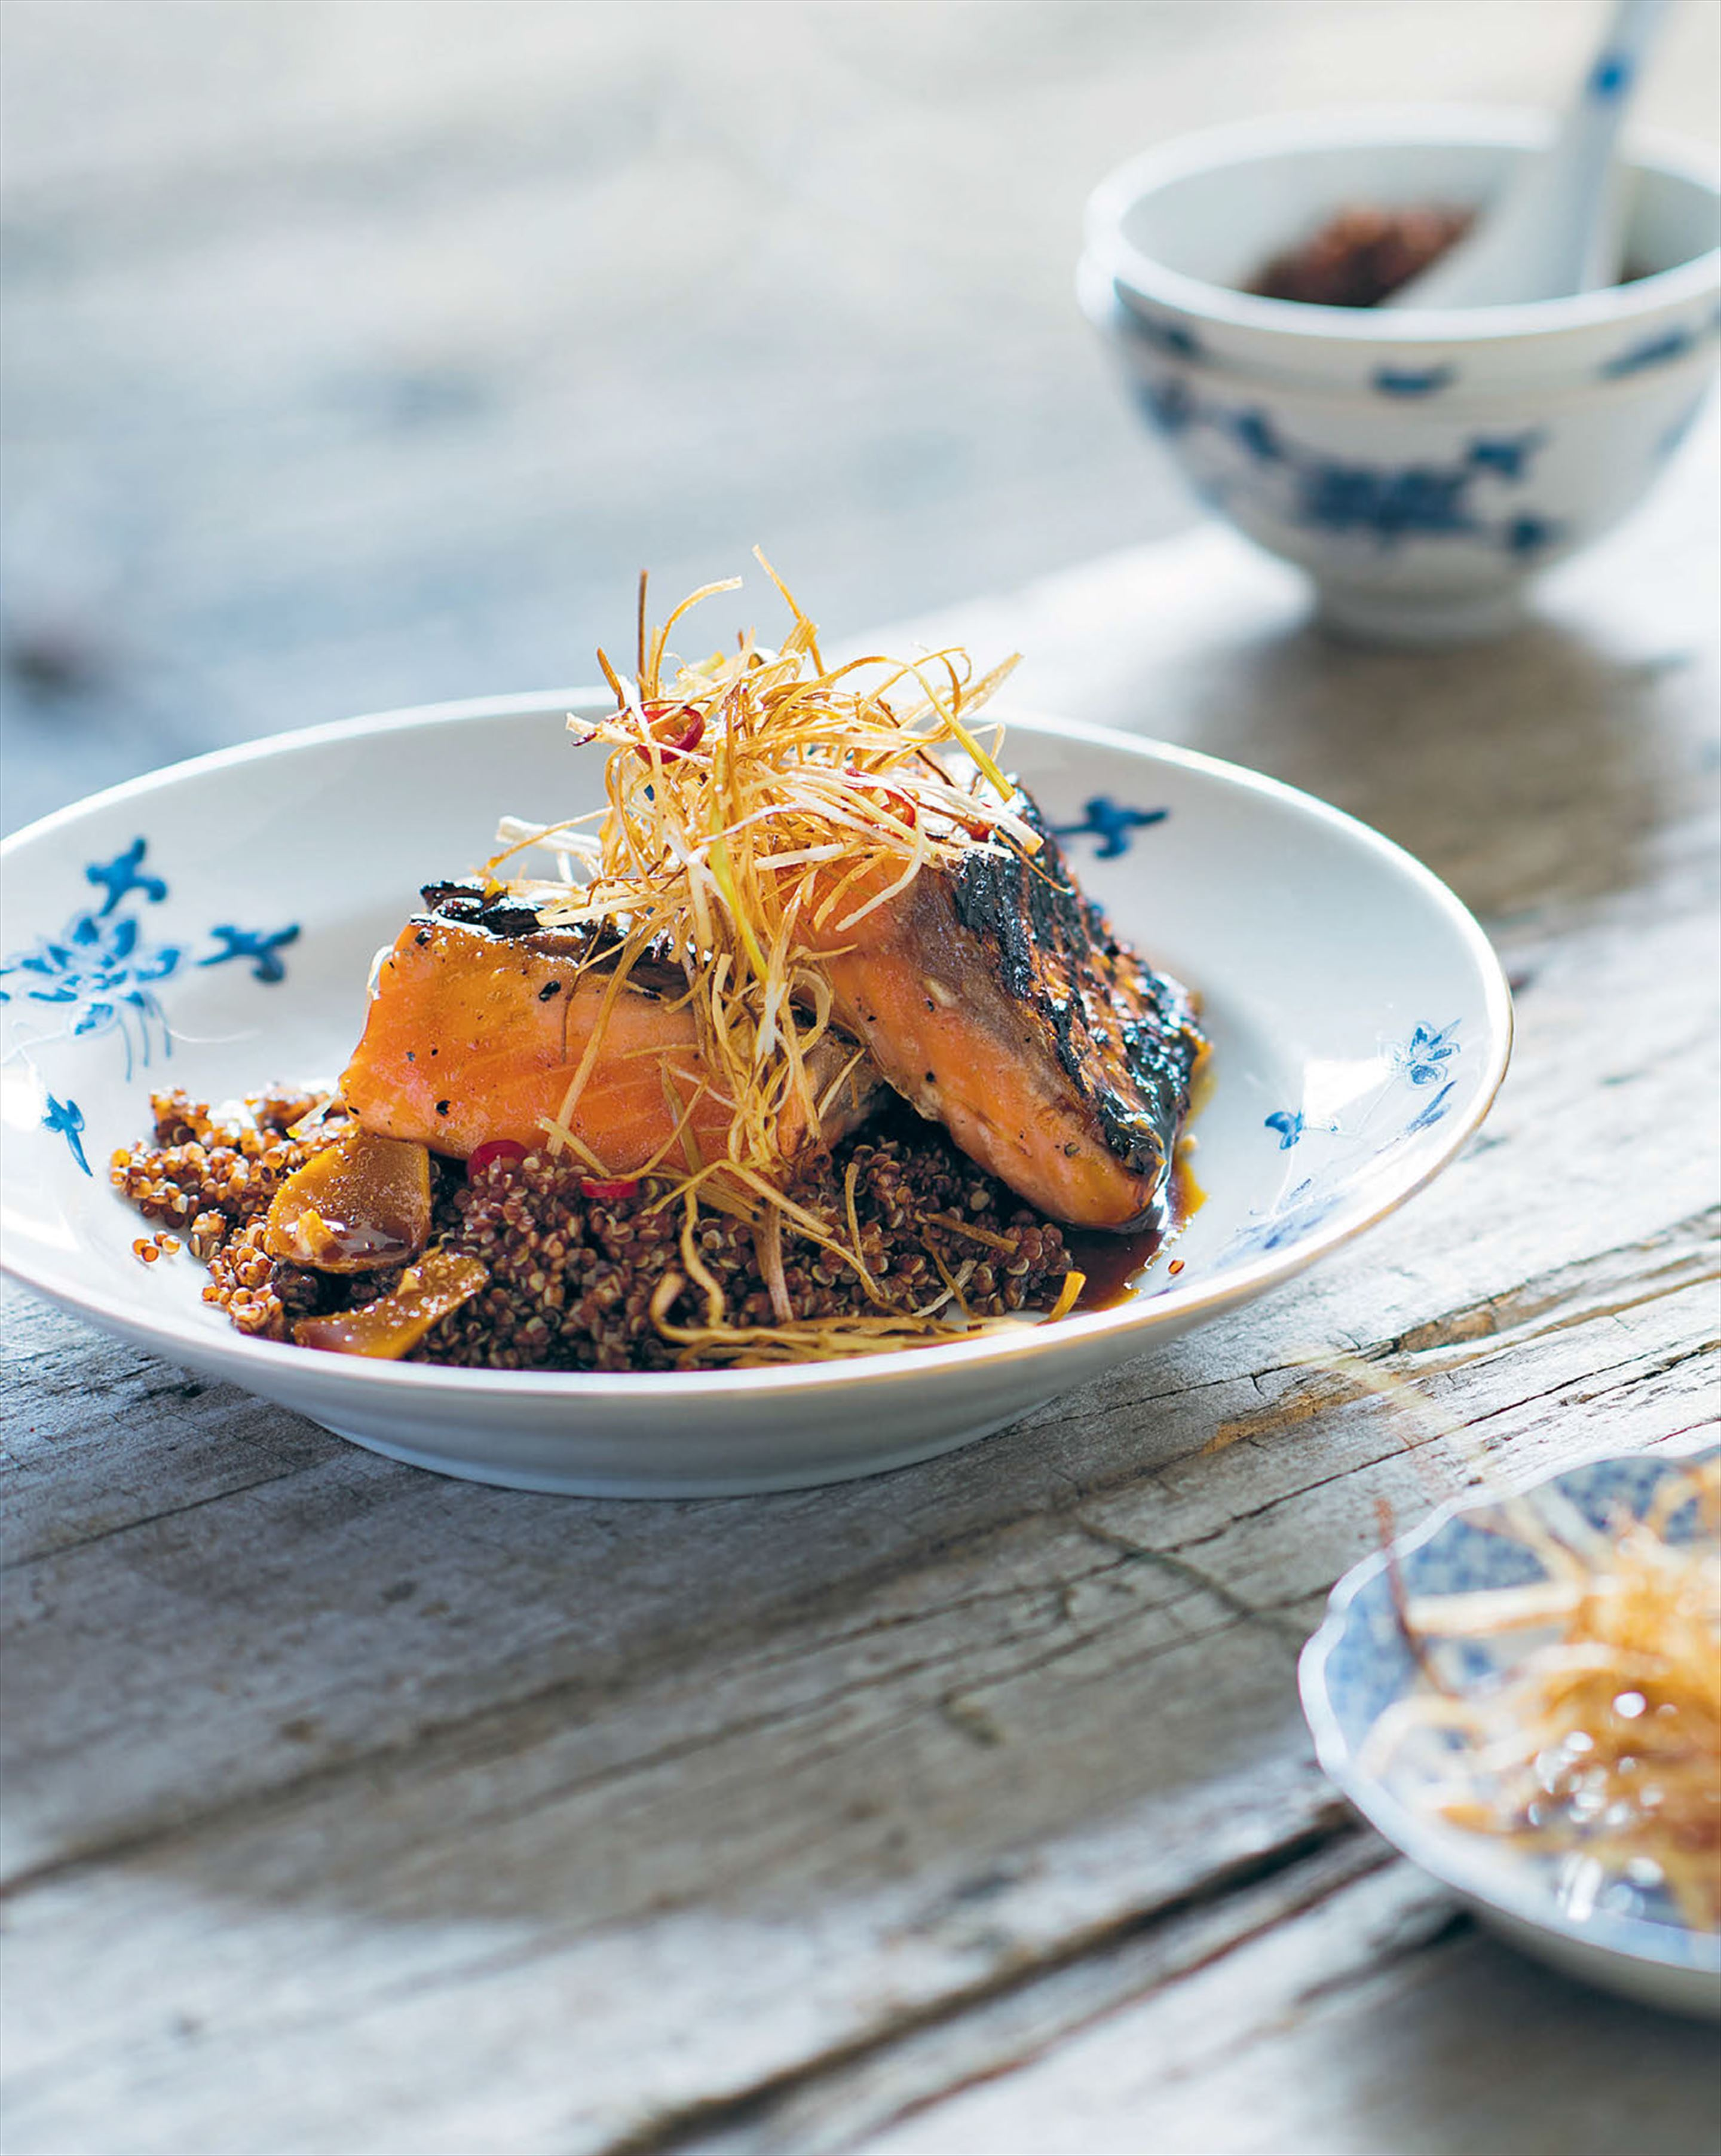 Chargrilled ocean trout with ginger & crispy leeks